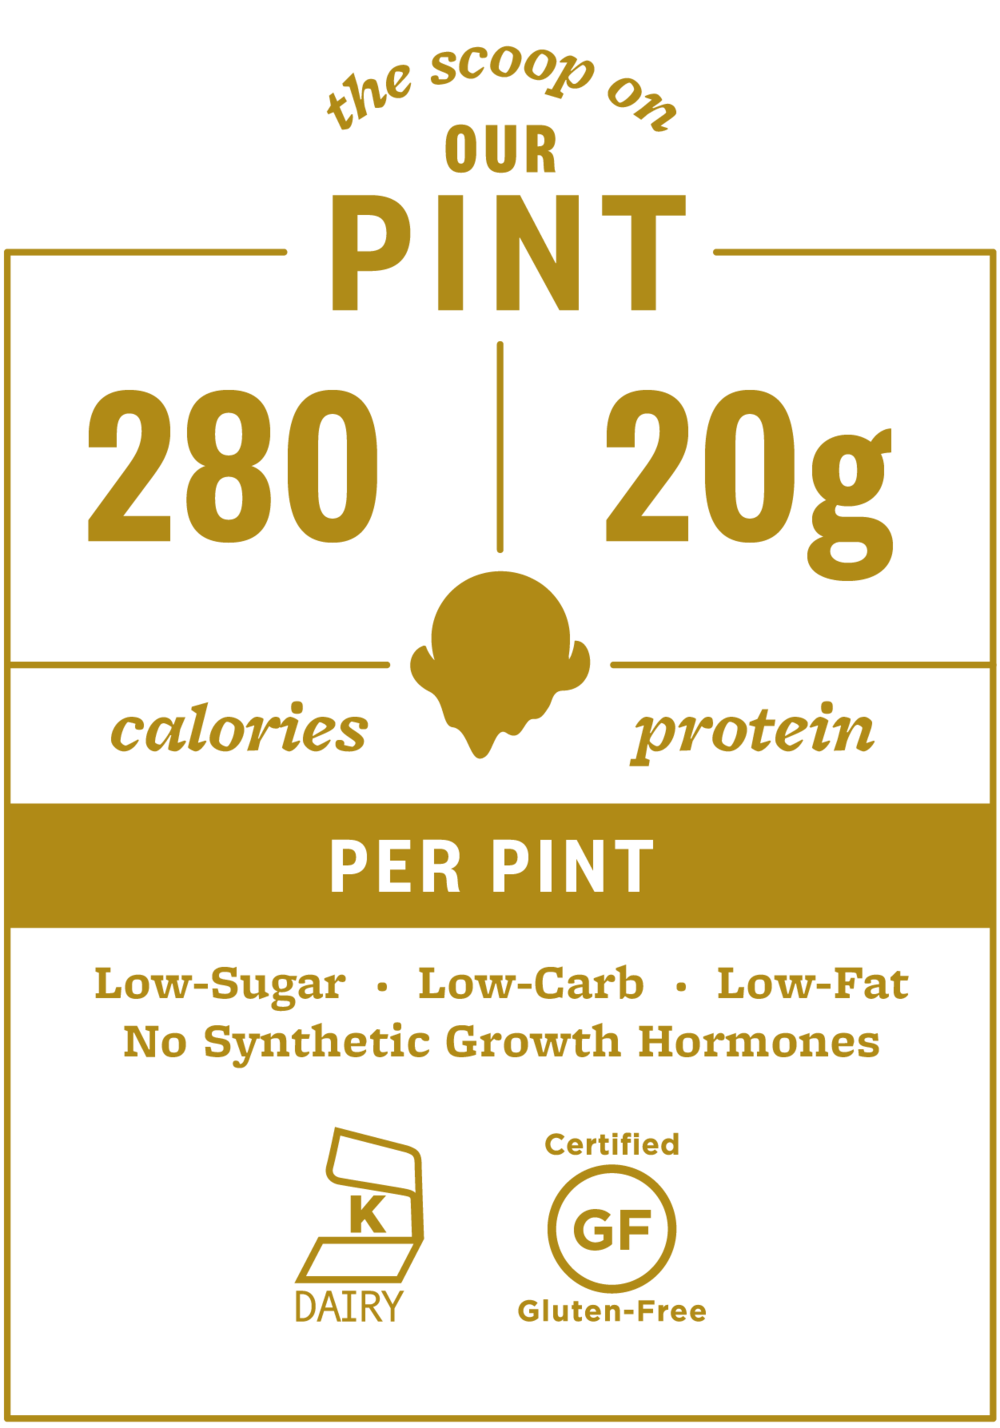 HT_Flavors_Scoop-Facts_170320_280cal-20g.png